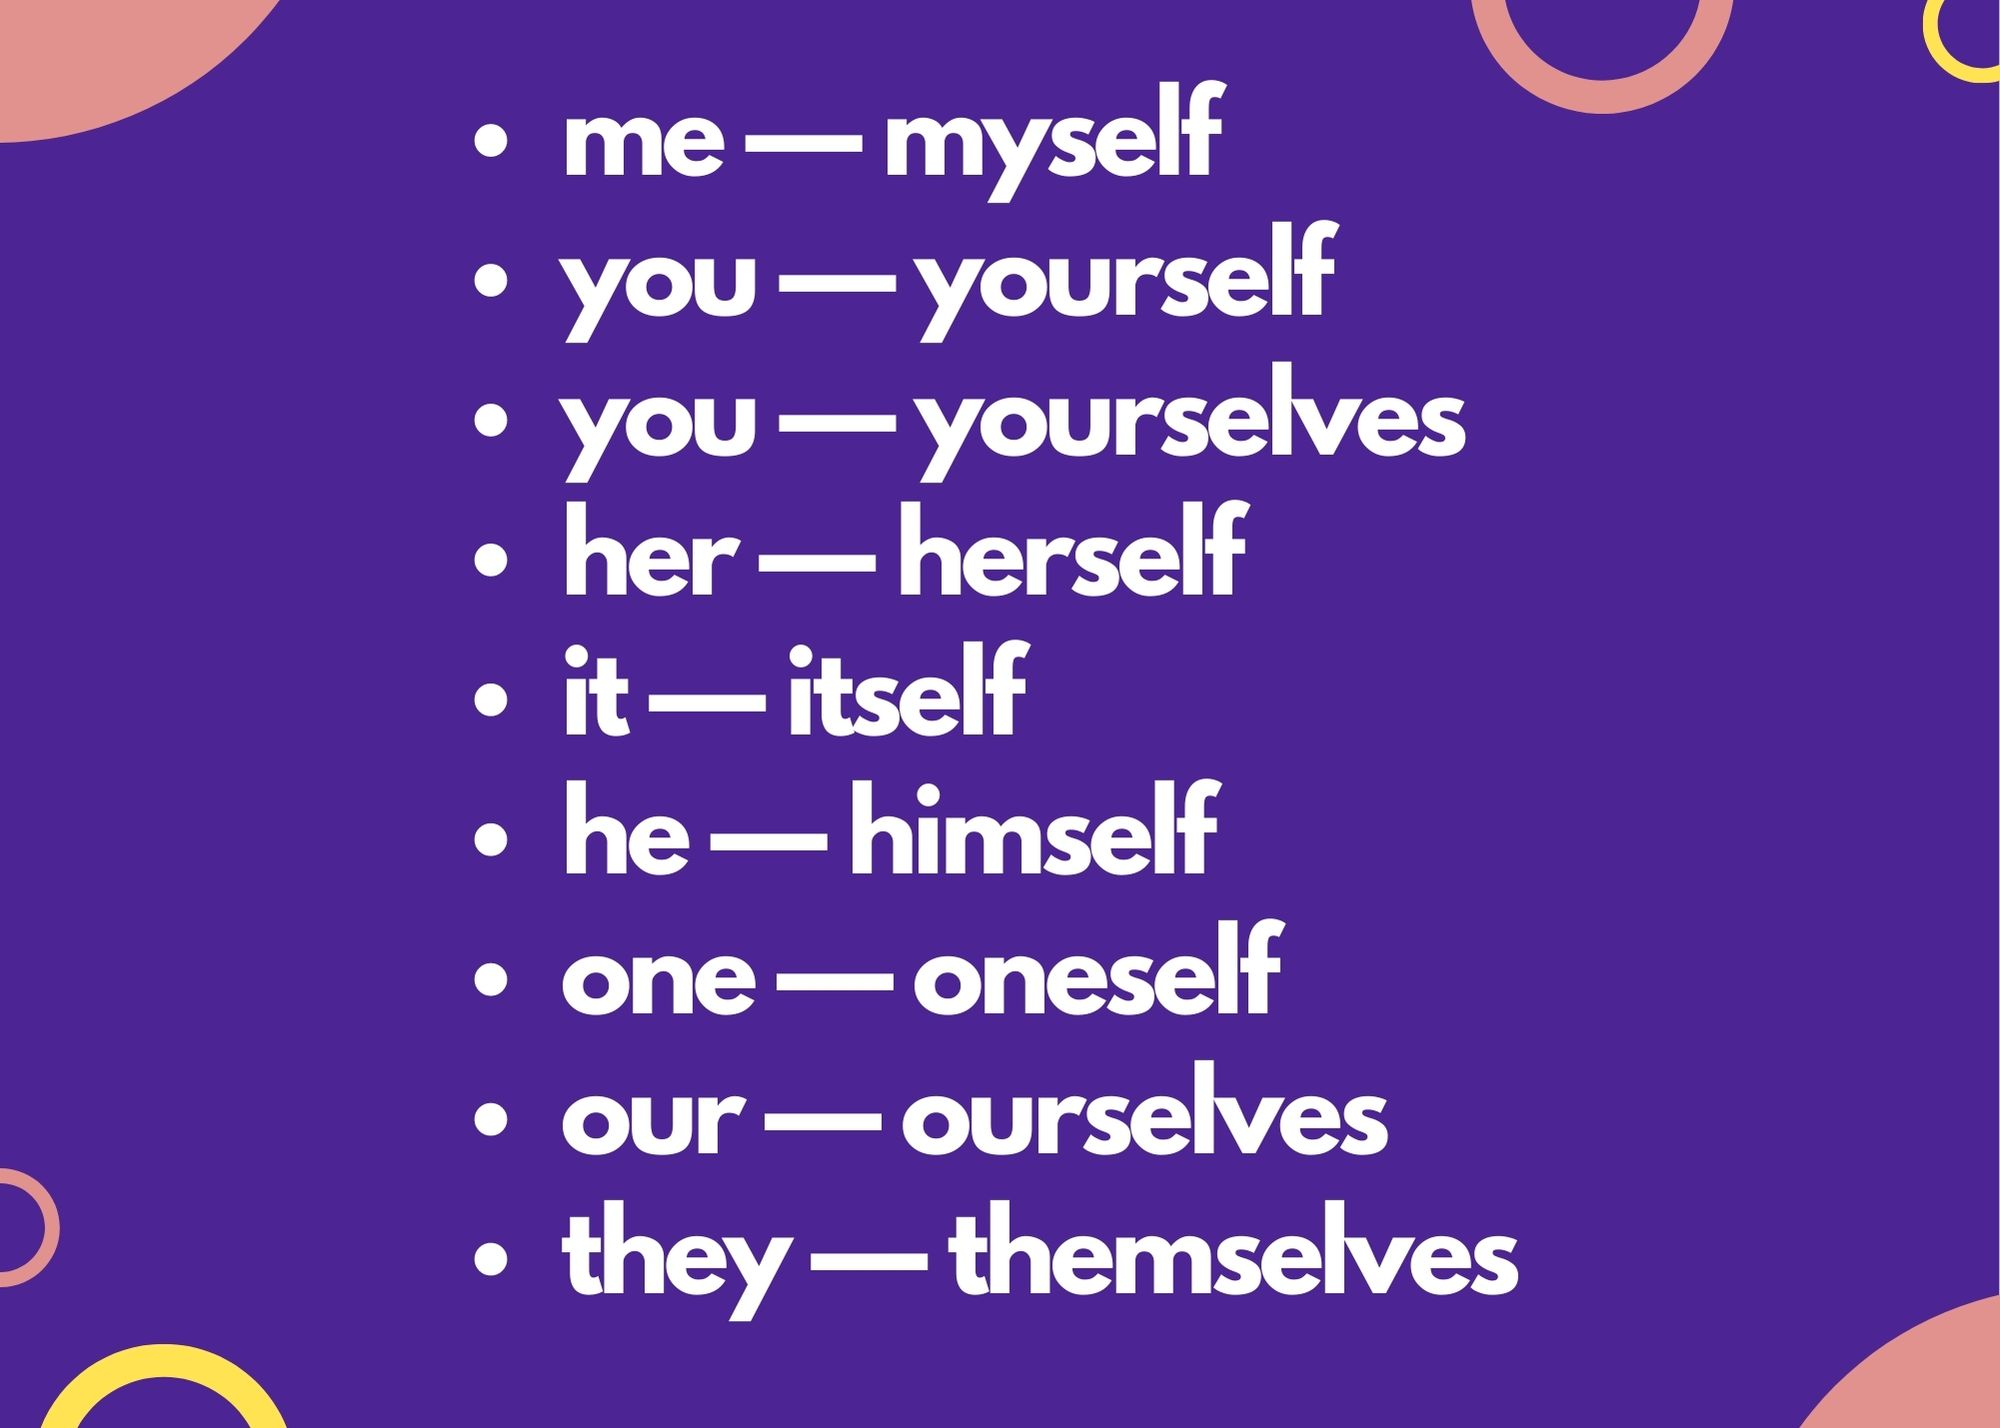 list of personal pronouns with their reflective pronouns: me — myself you — yourself you — yourselves her — herself it — itself he — himself one — oneself our — ourselves they — themselves